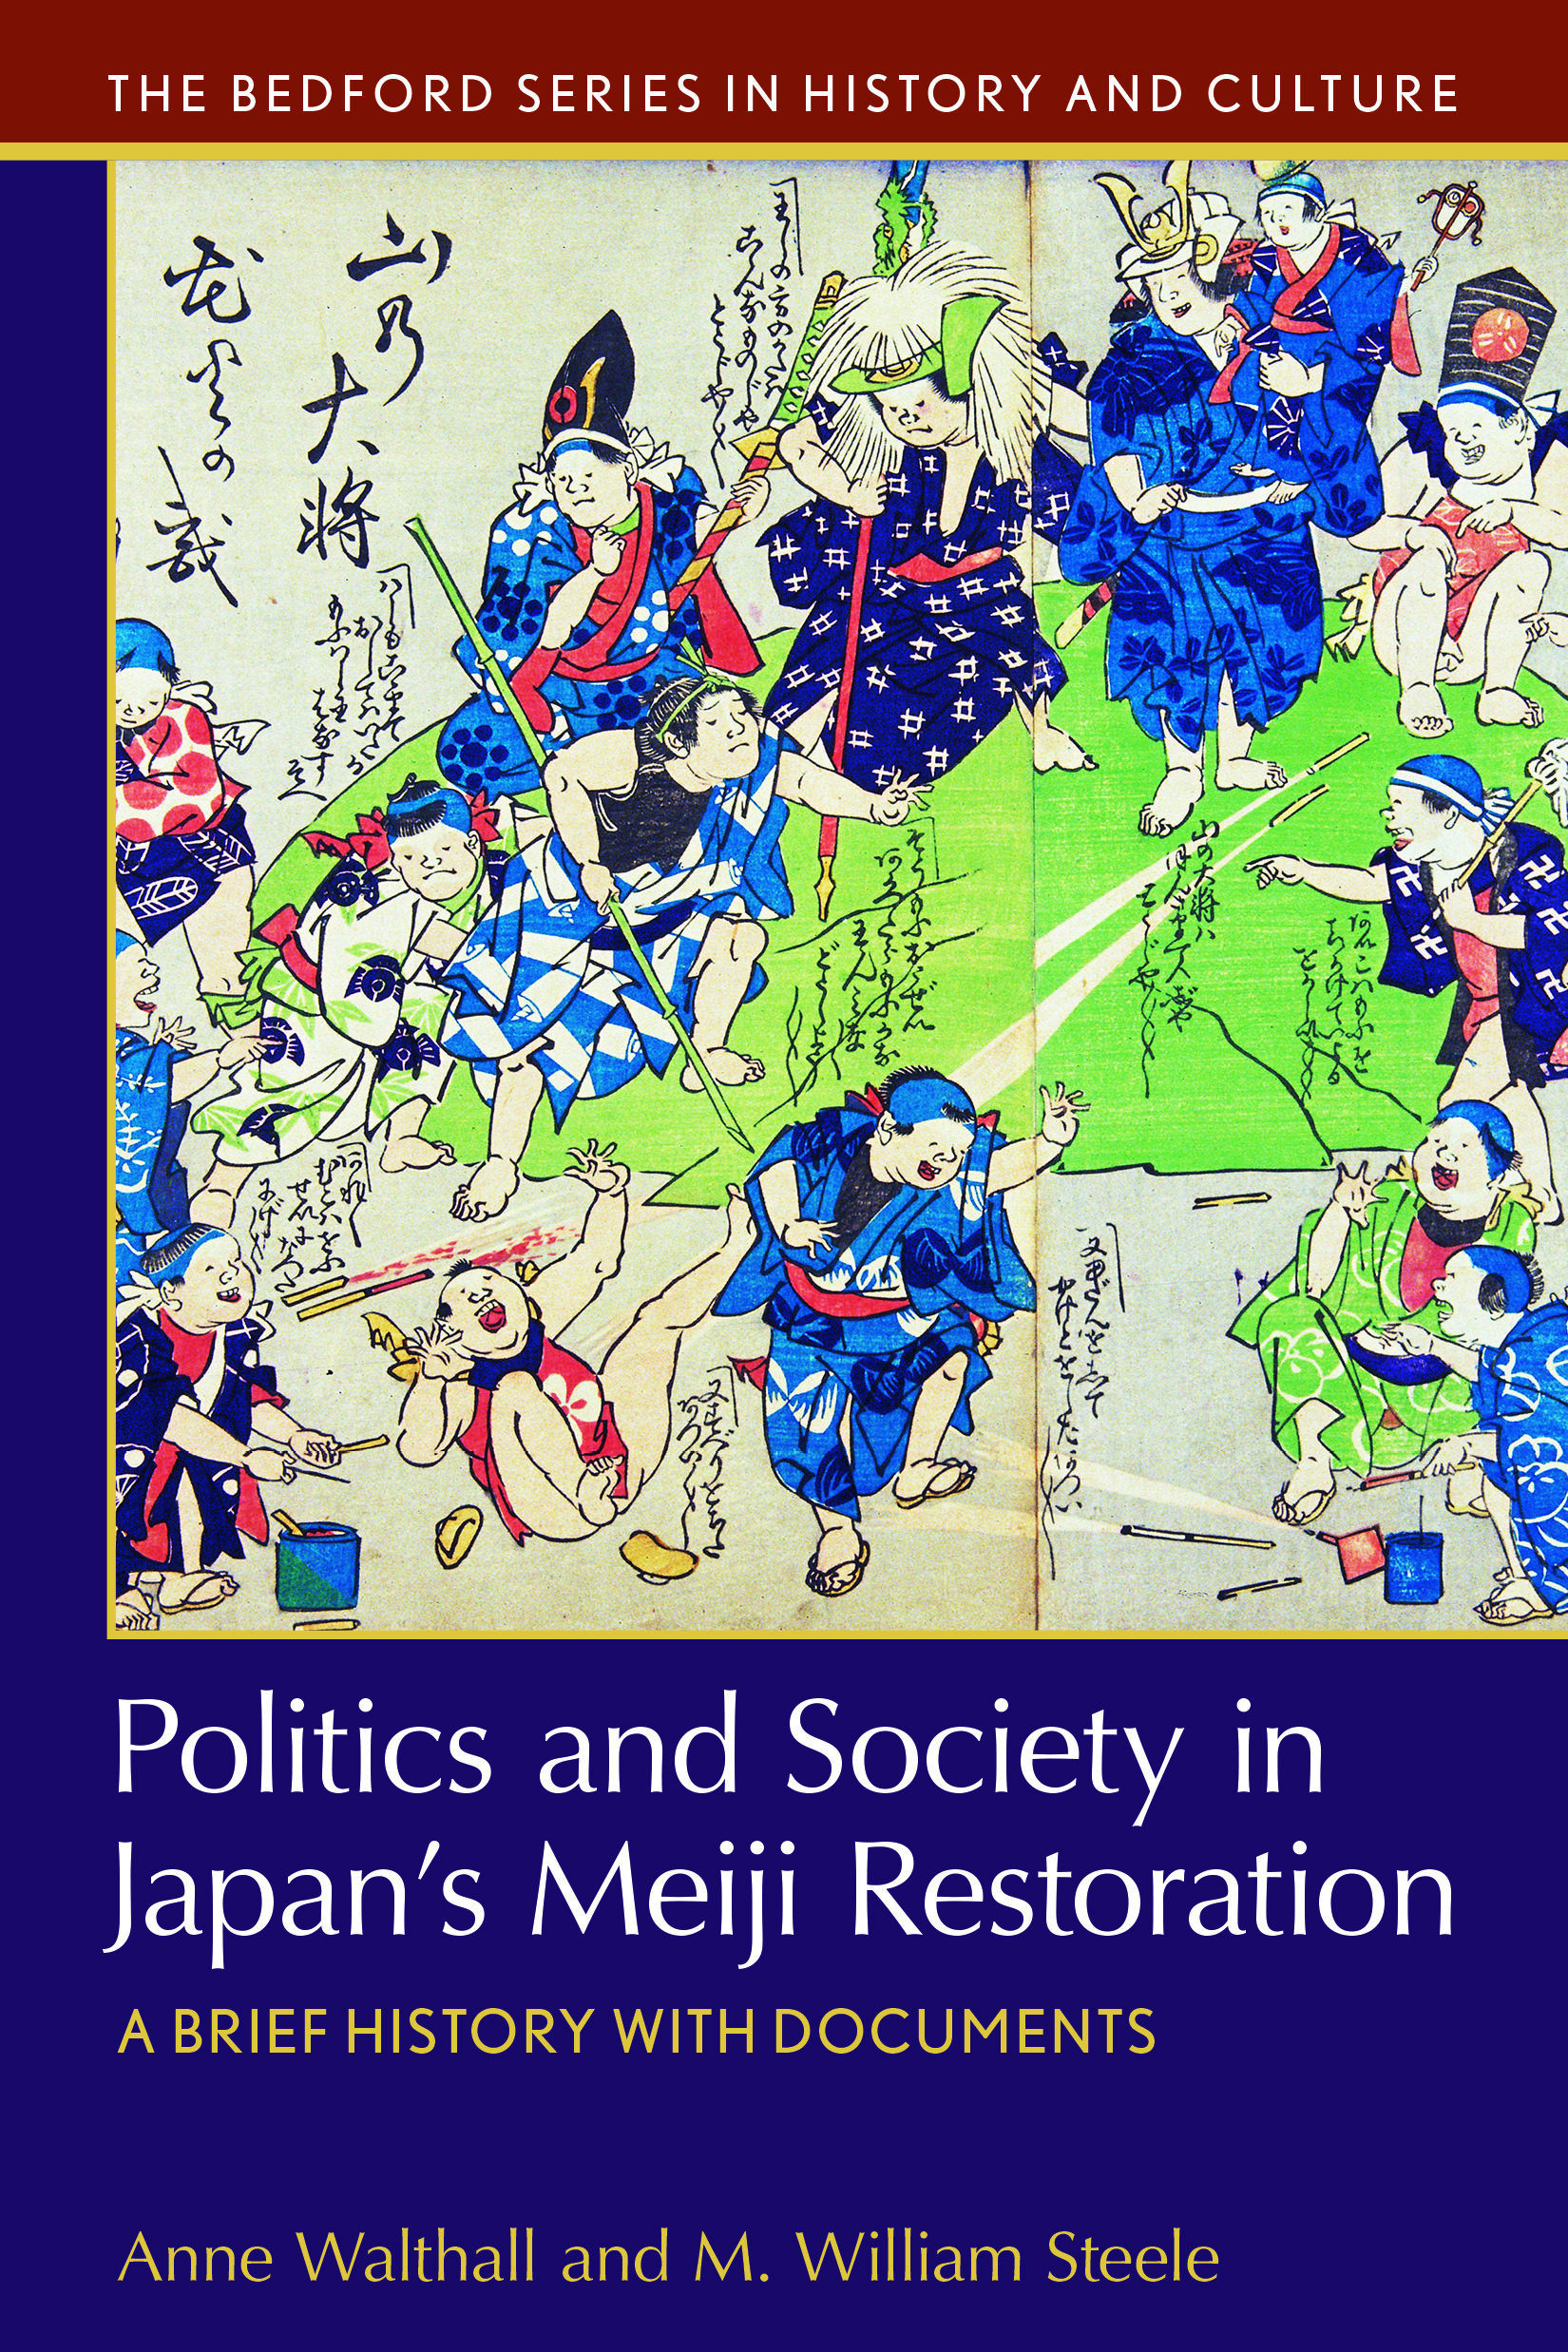 meiji restoration in japan In 1868 the tokugawa shôgun (great general), who ruled japan in the feudal period, lost his power and the emperor was restored to the supreme position the emperor took the name meiji (enlightened rule) as his reign name this event was known as the meiji restoration a powerful army and.